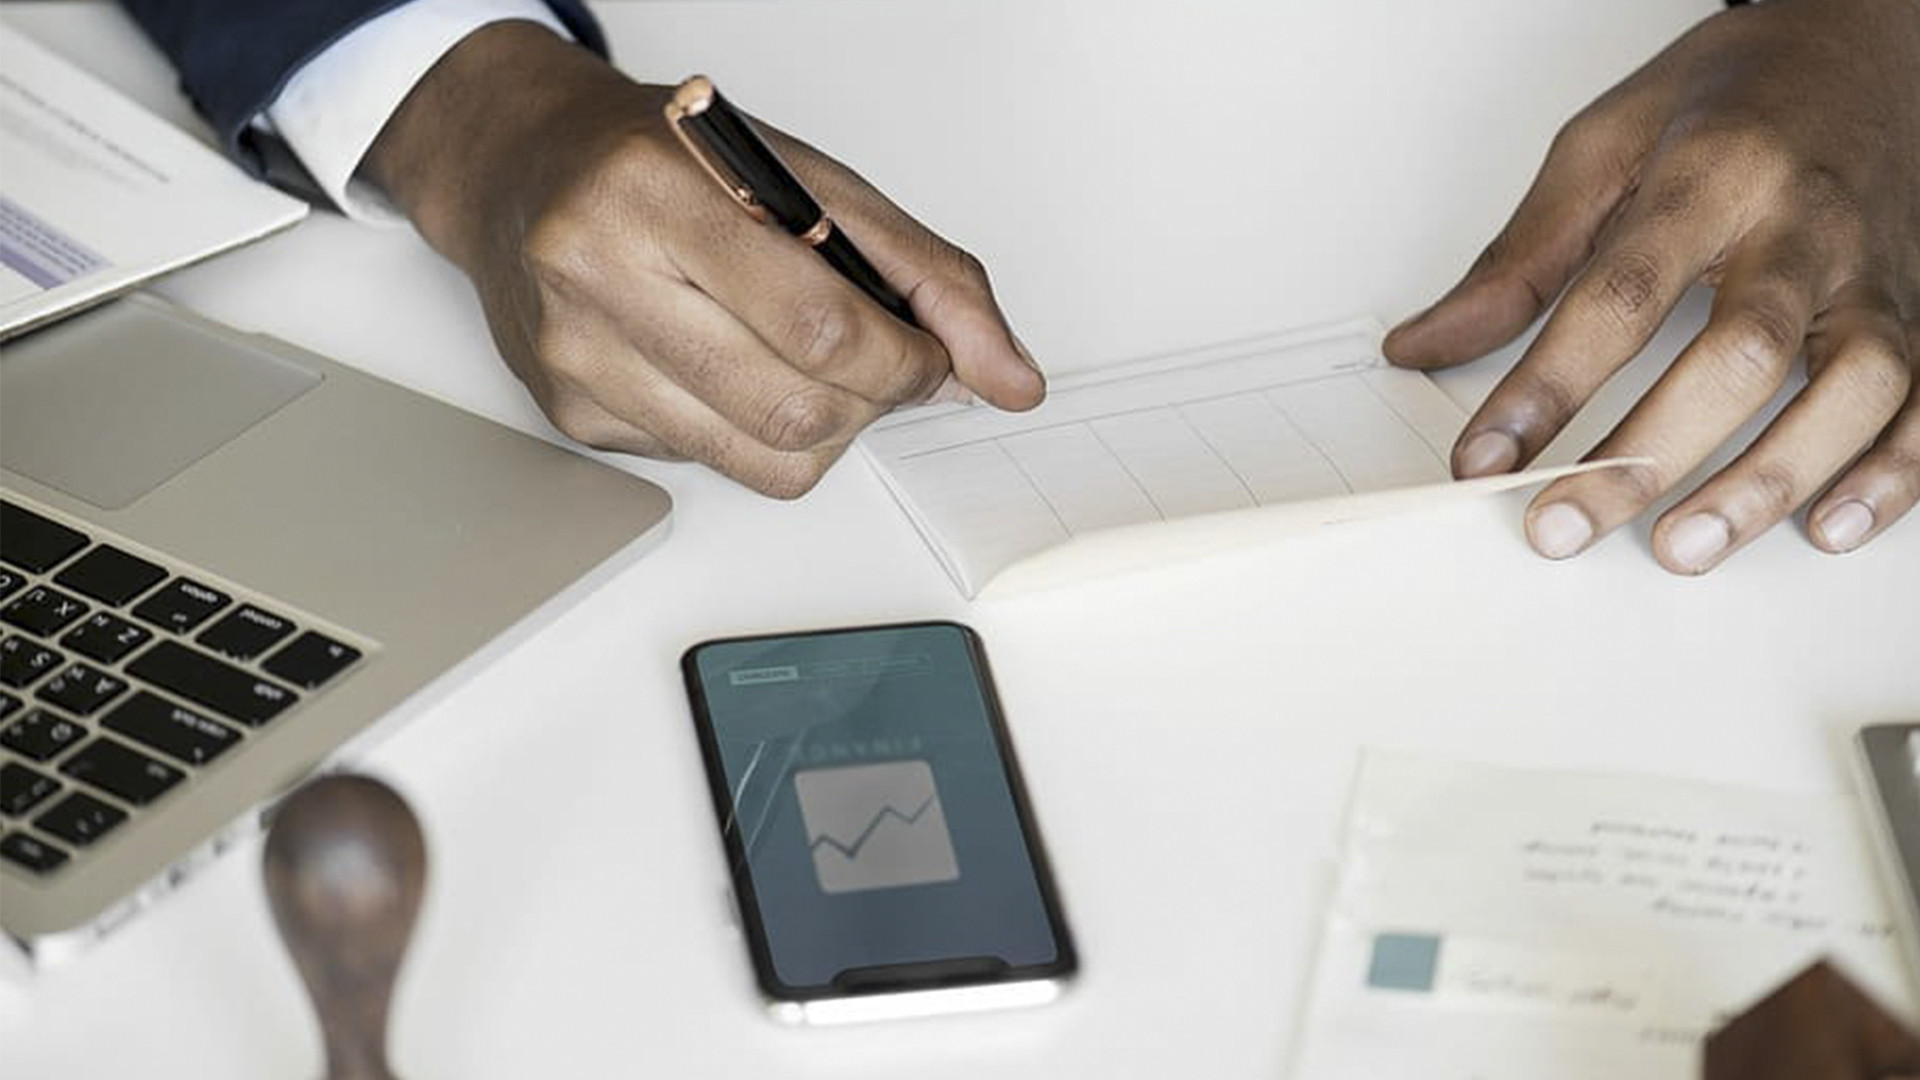 Implementing electronic signature solution for your business